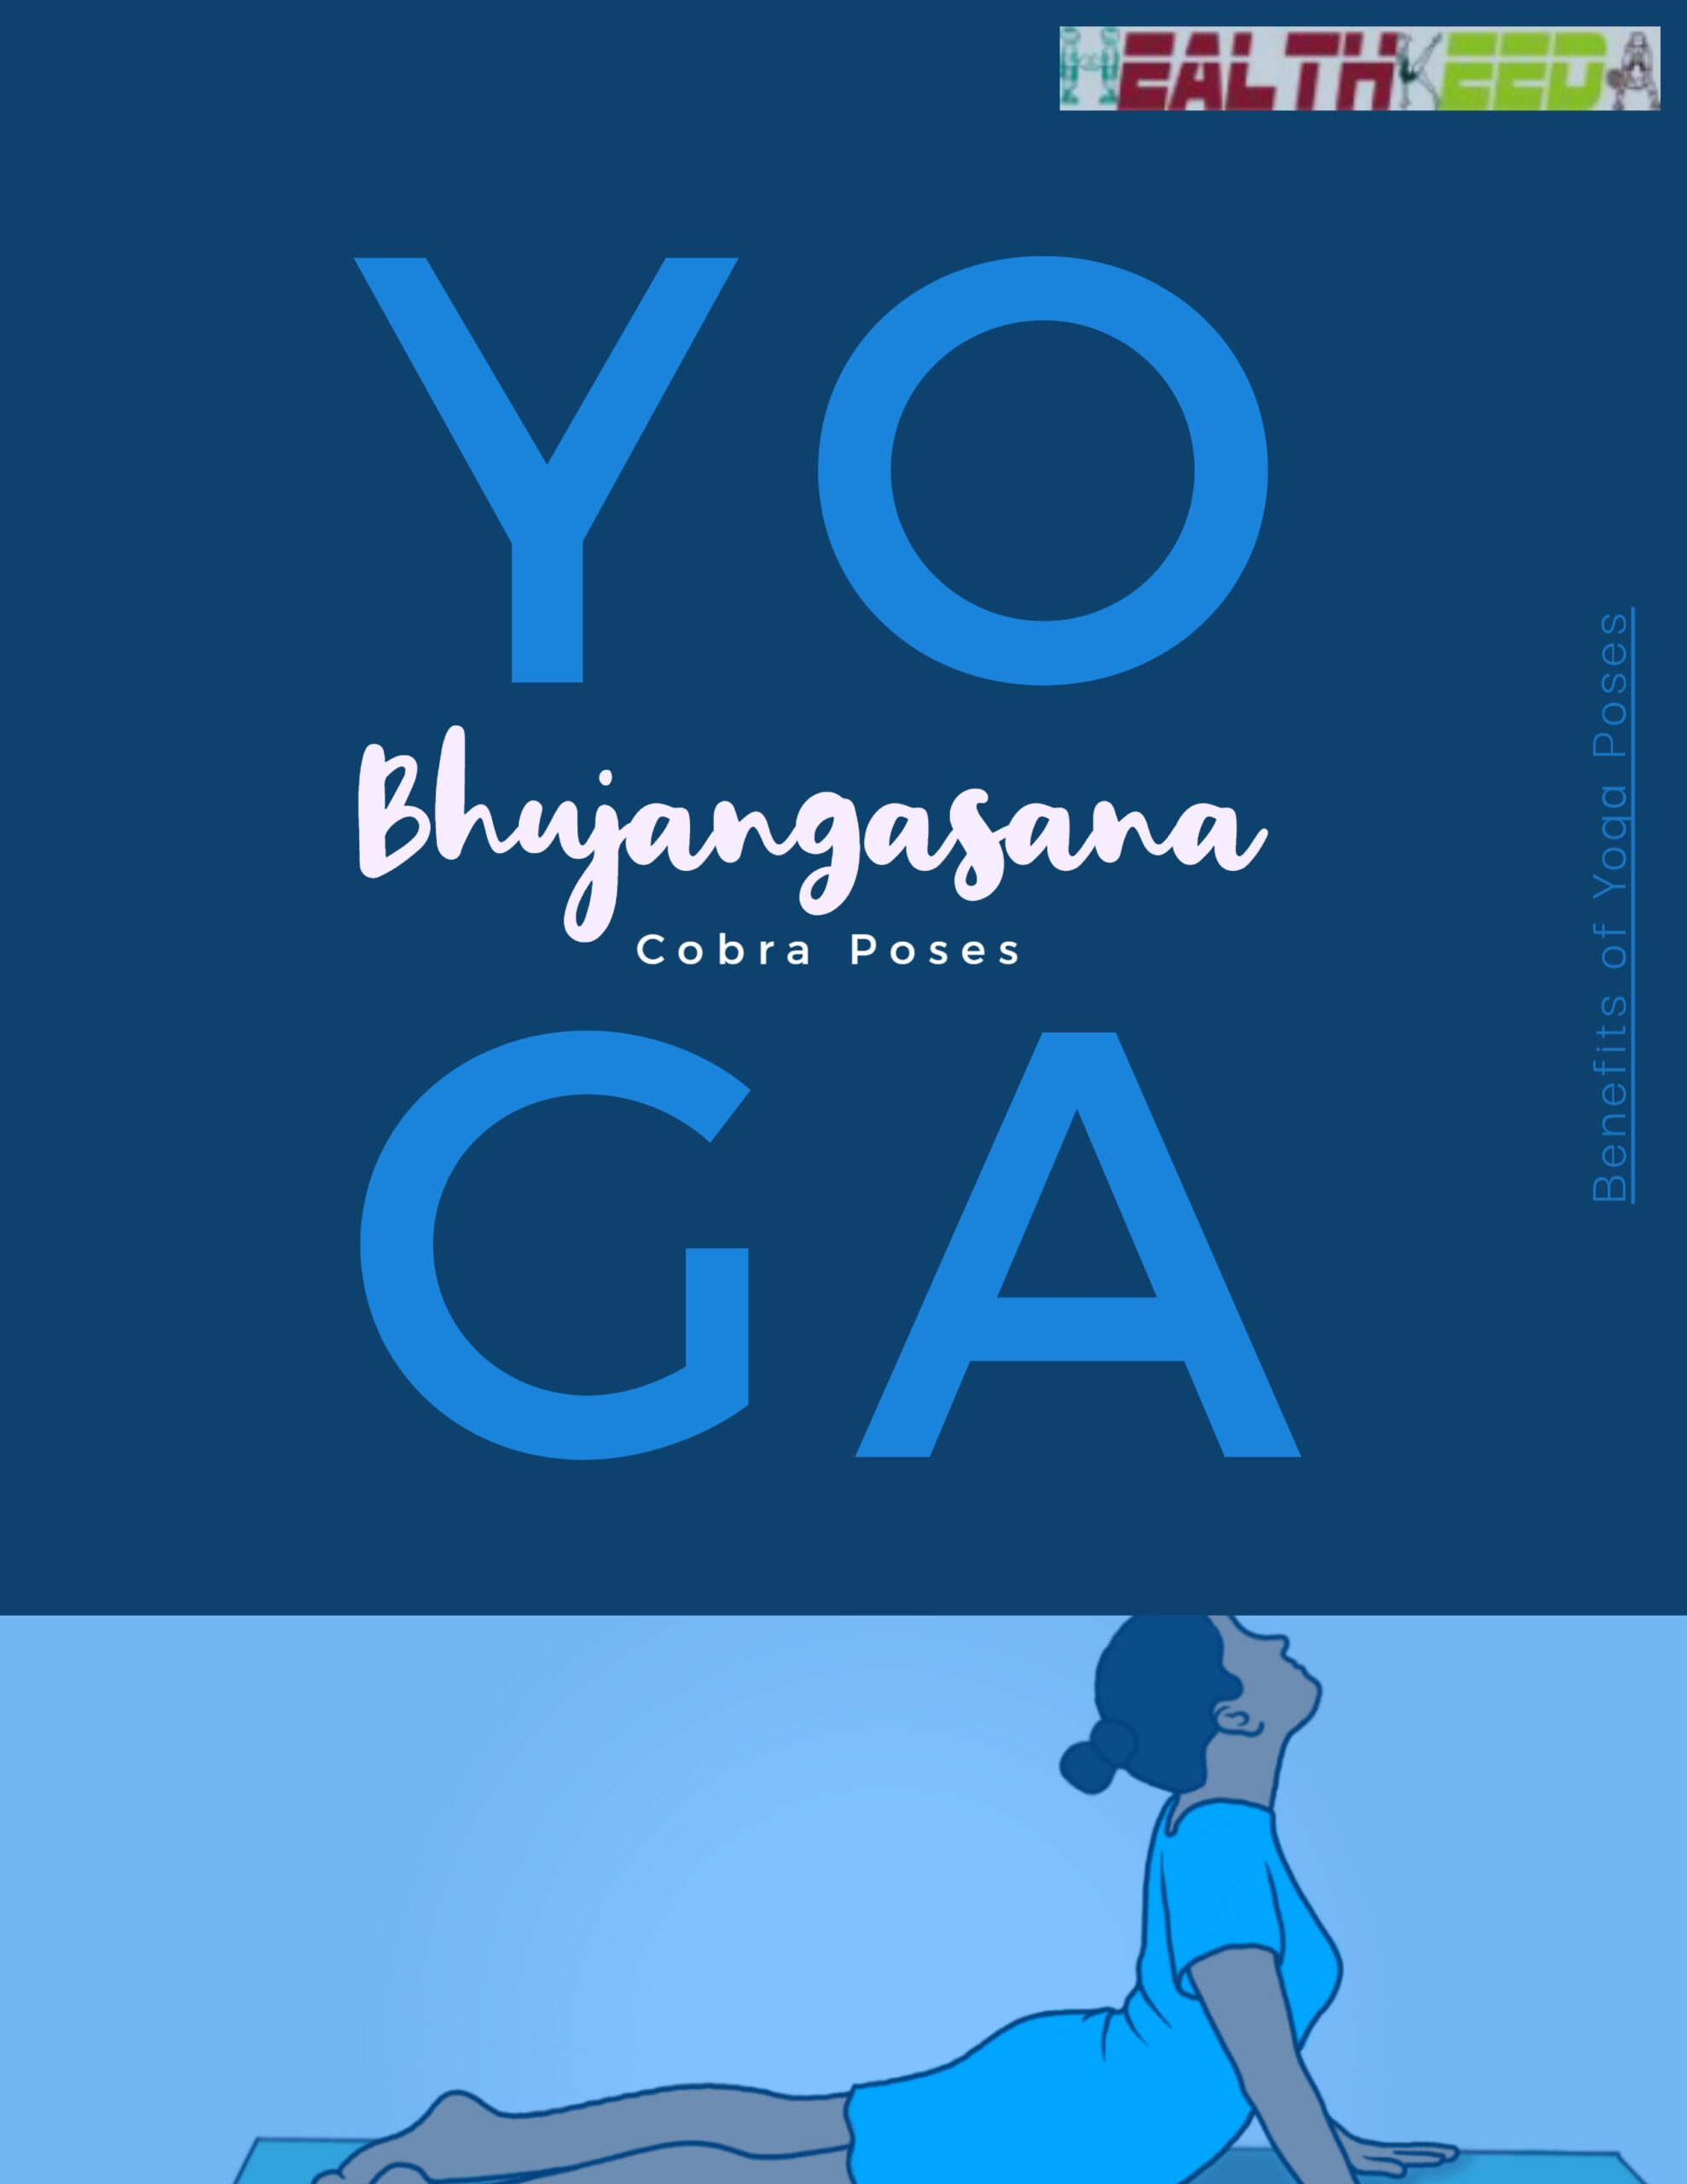 Cobra Pose Bhujangasana Yoga Creative Art Title Poster